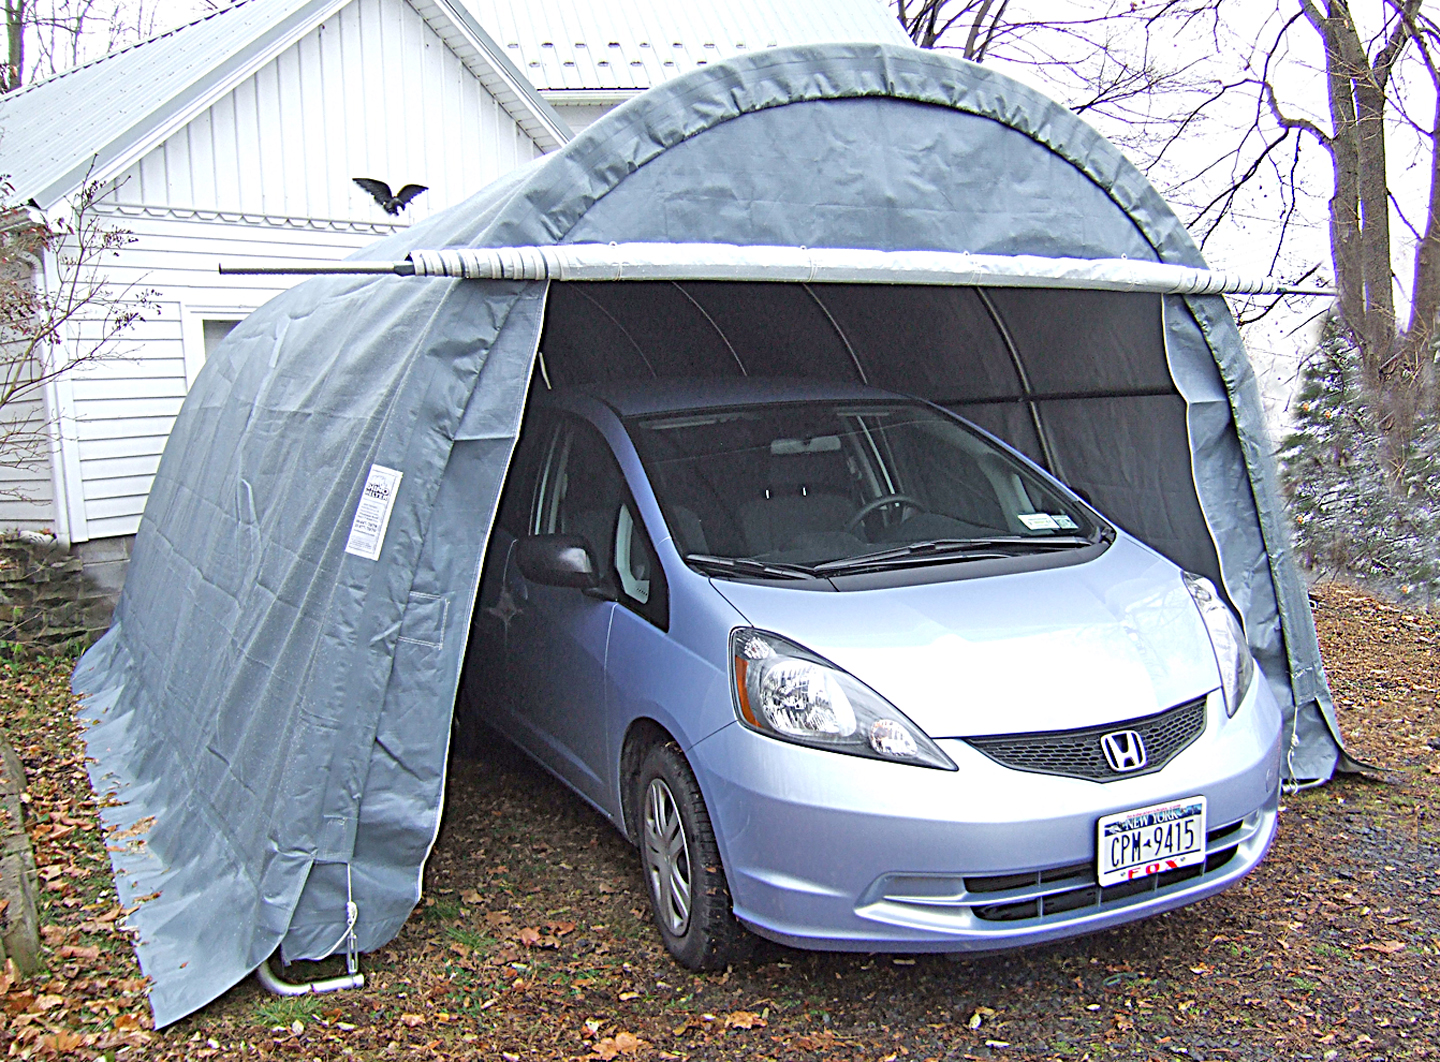 Rhino Shelter Instant Garages – Round Top | Portable ...